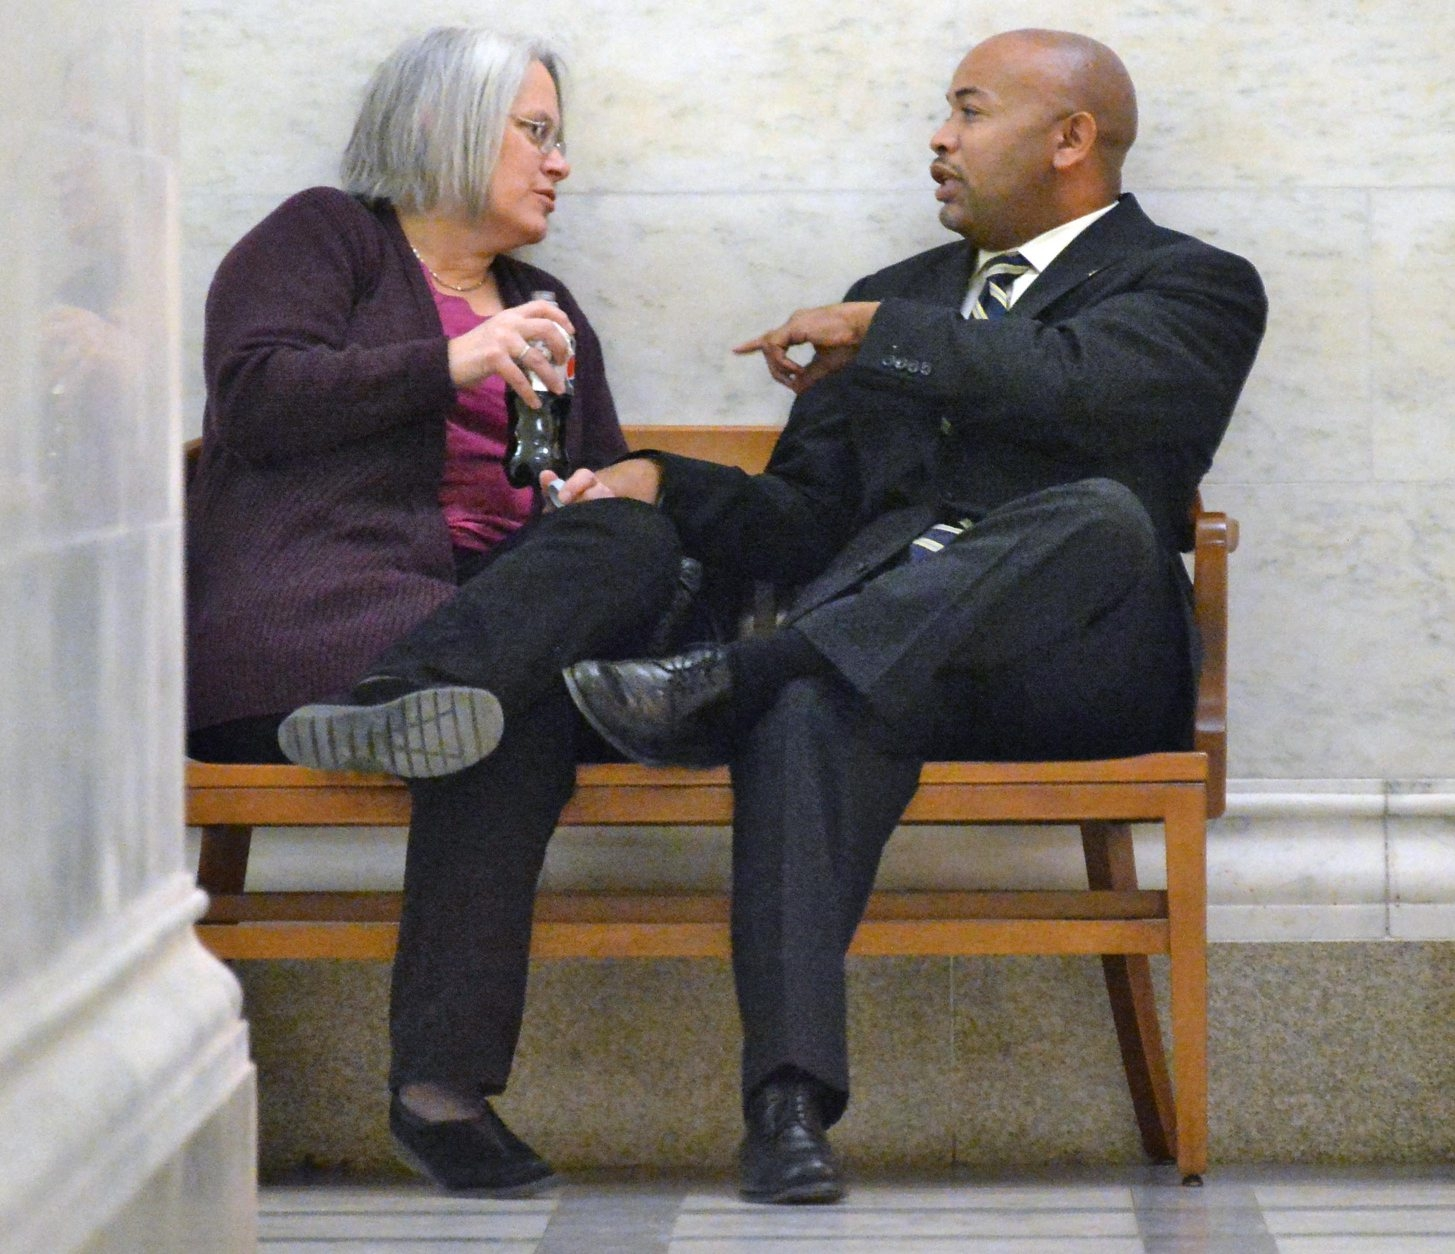 Assemblyman Carl Heastie says decision will be made by members.